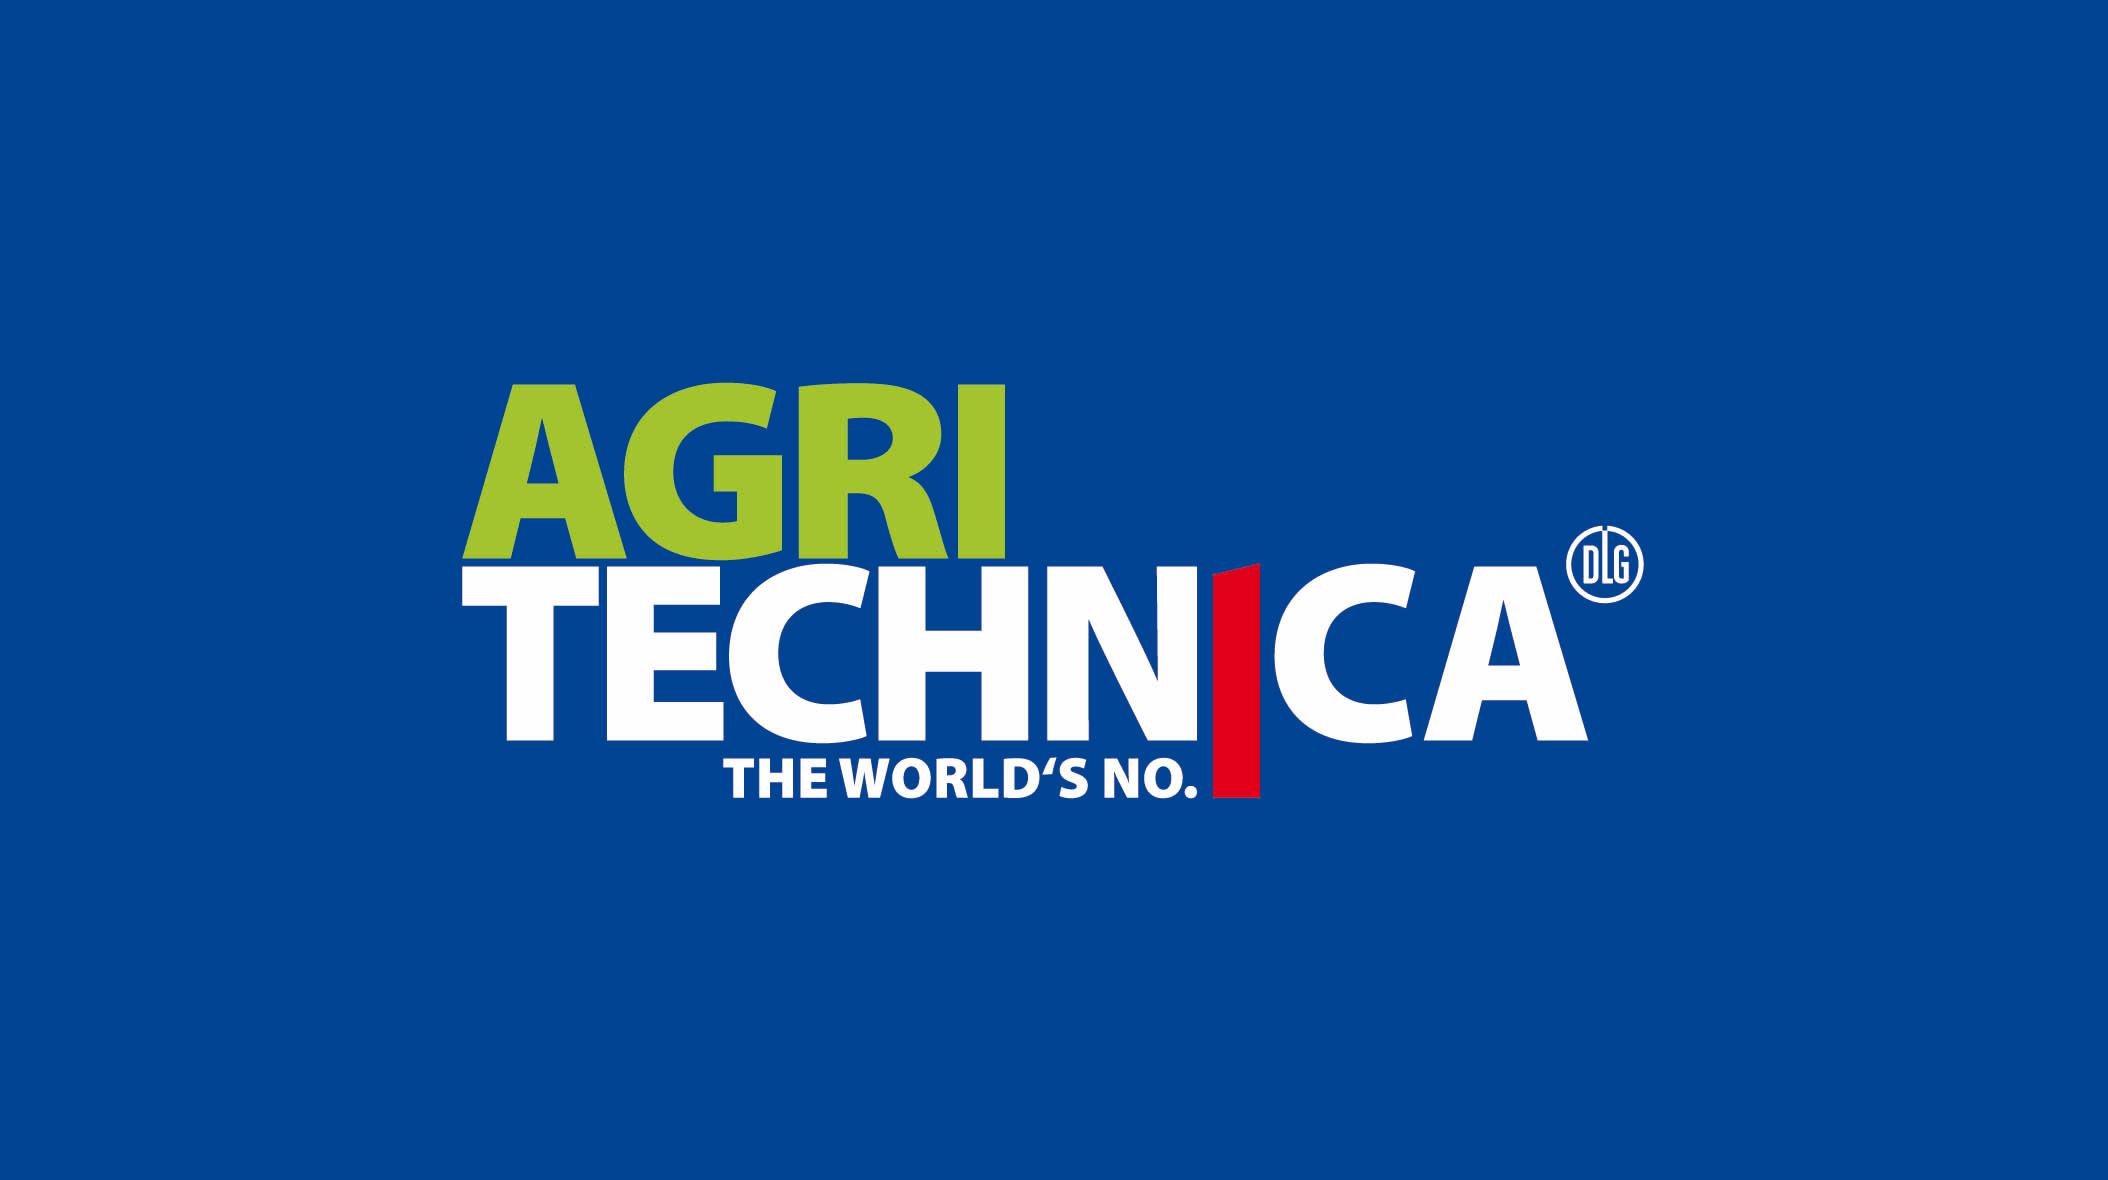 Messelogo Agritechnica 2017 Hannover Fläche